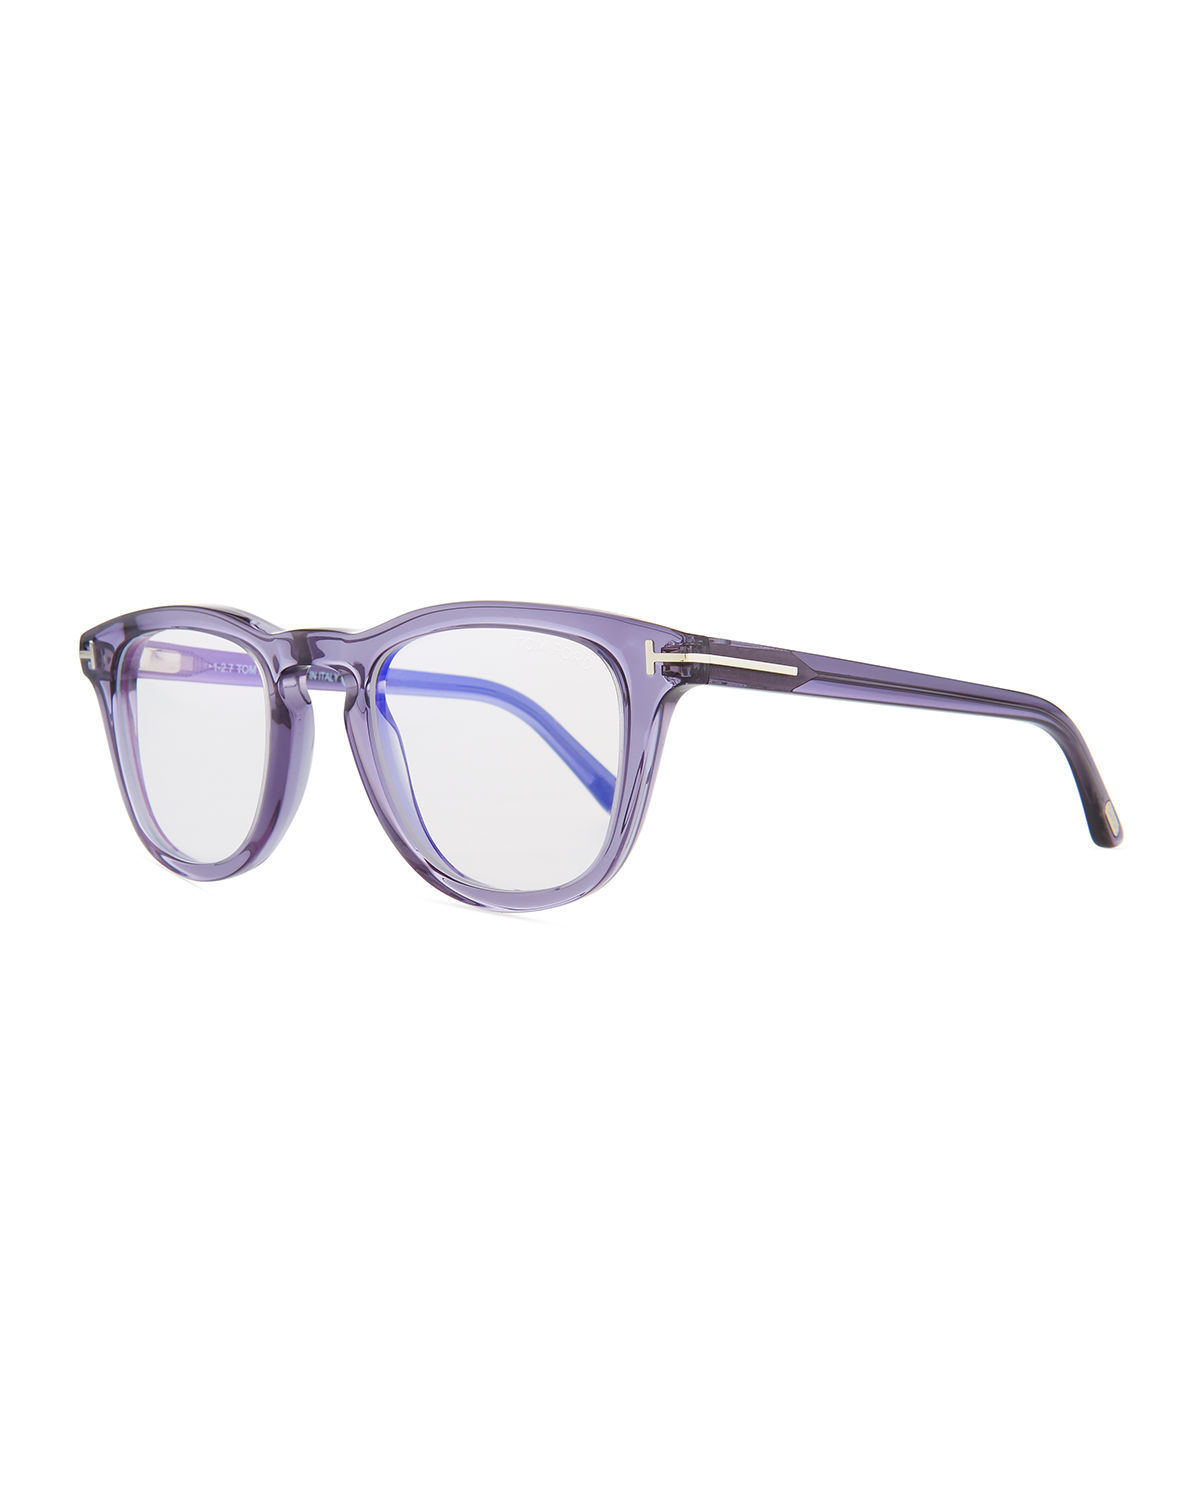 c30e209c21e9 TOM FORD Blue Block Semitransparent Acetate Square Optical Frames ...